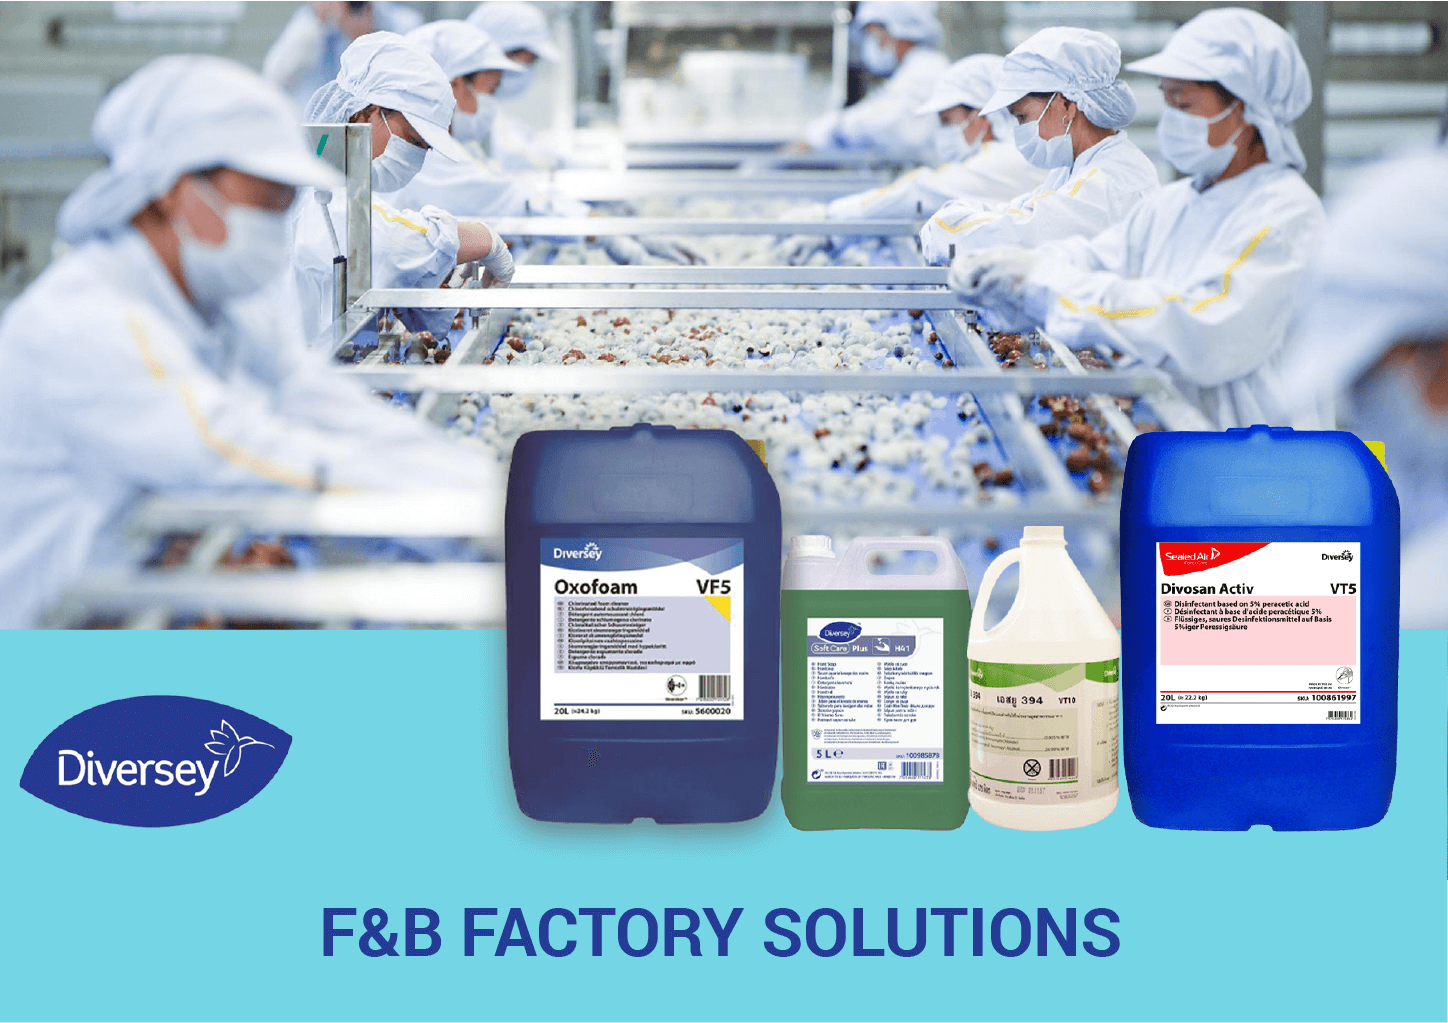 F&B FACTORY SOLUTIONS